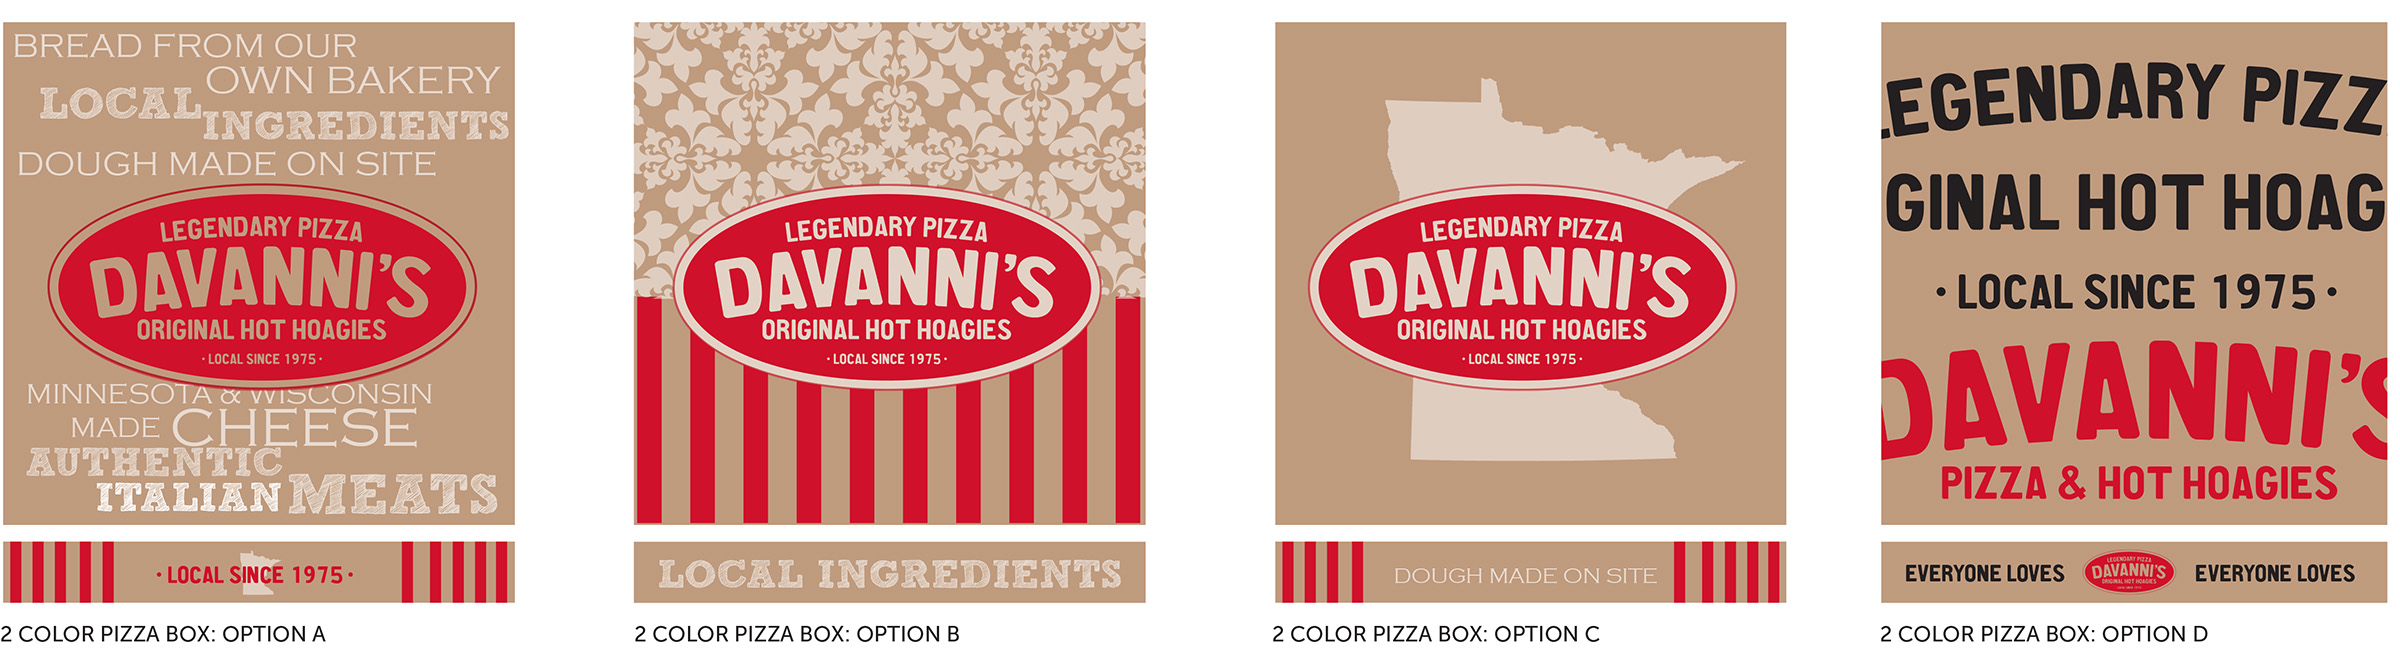 Davannis_Boxes